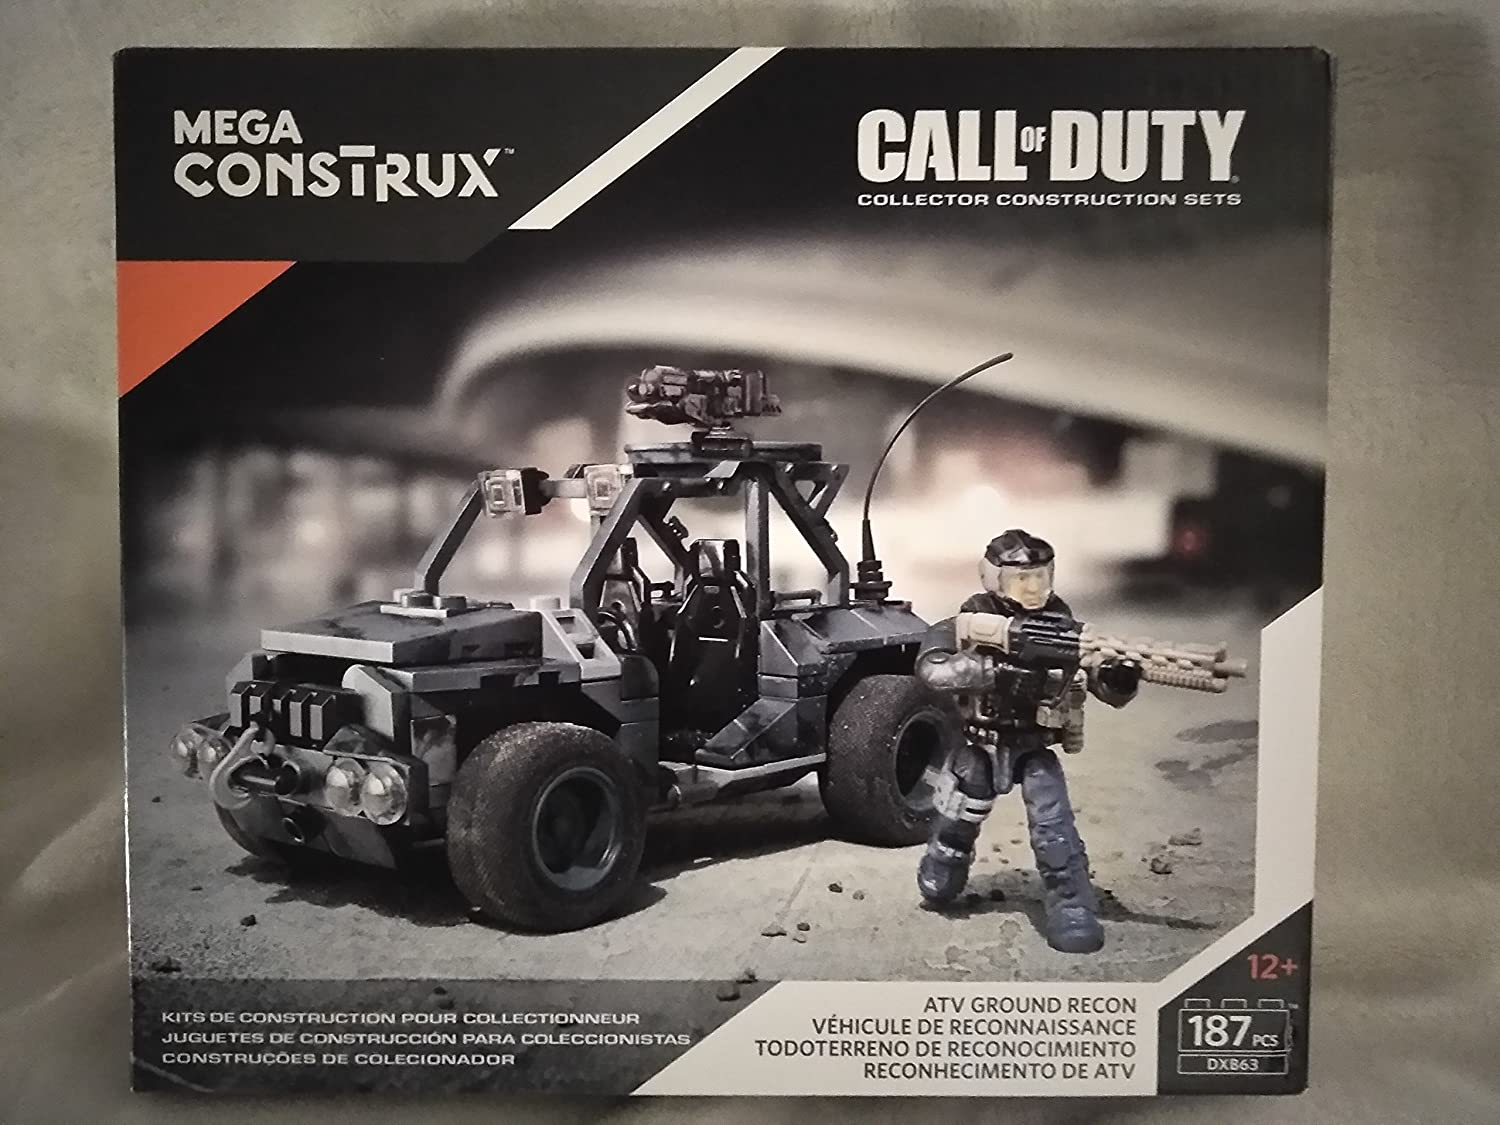 Amazon.com: Call Of Duty Collector Construction Sets Mega ...